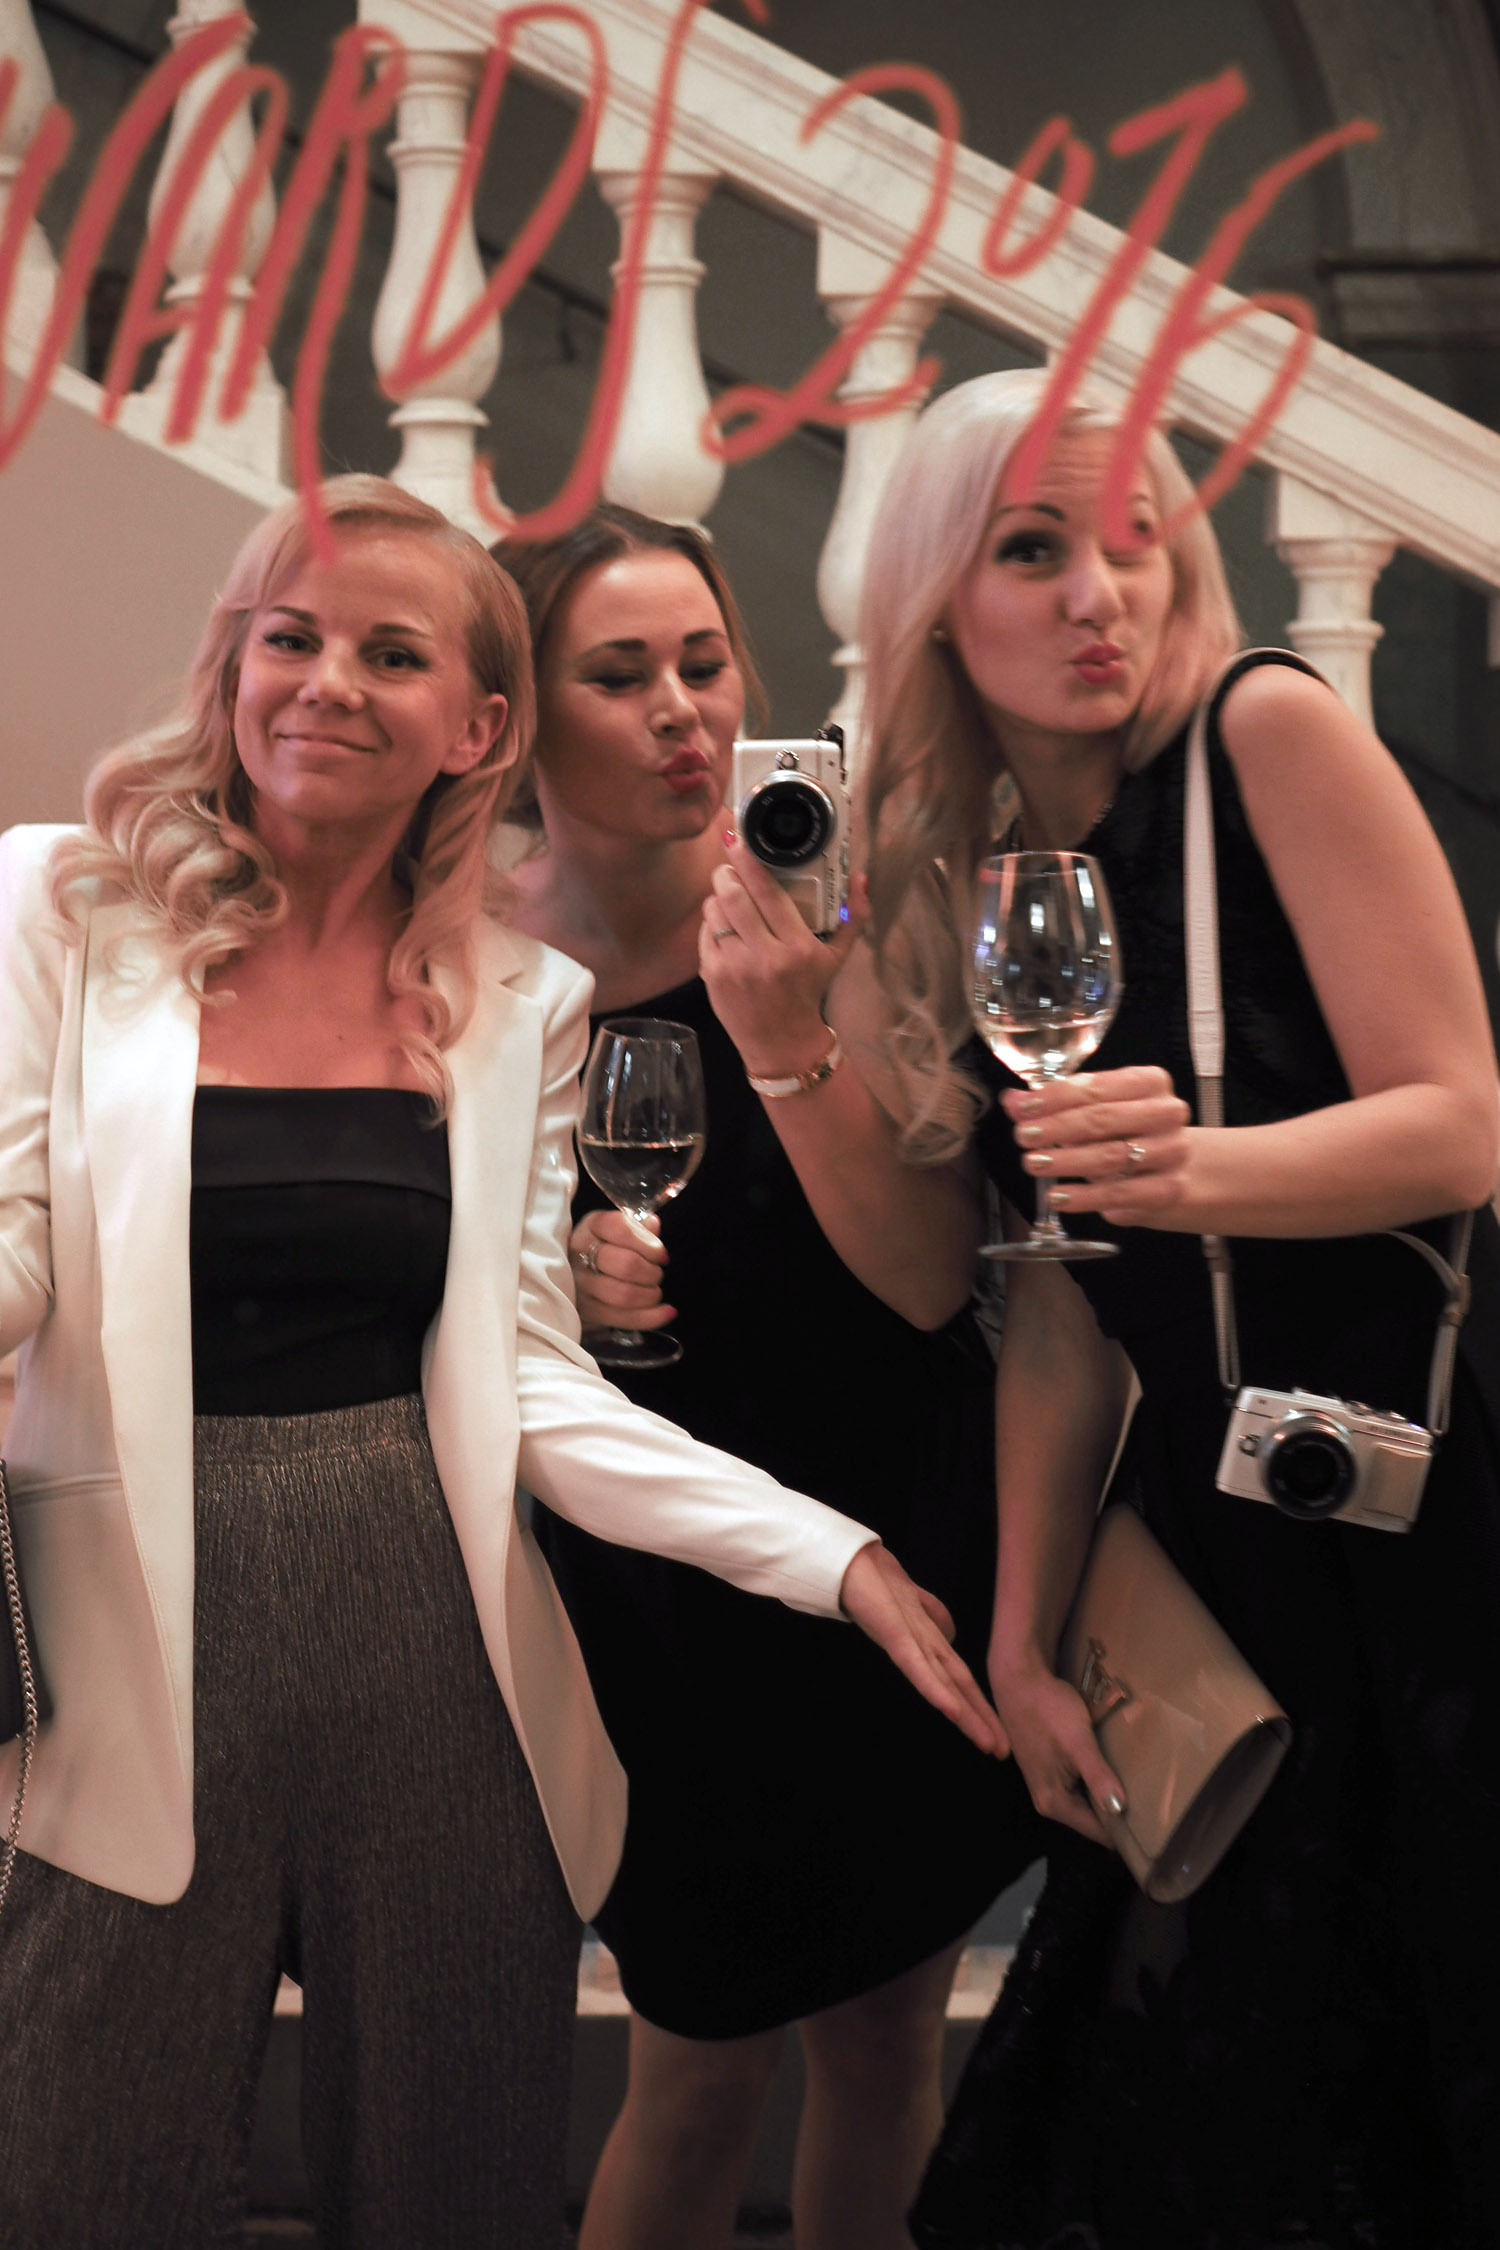 C and the city - ELLE Style Awards 2016 at Vanha Ylioppilastalo in Helsinki, Finland - read more on the blog: //www.idealista.fi/charandthecity/2016/10/23/elle-style-awards-2016/